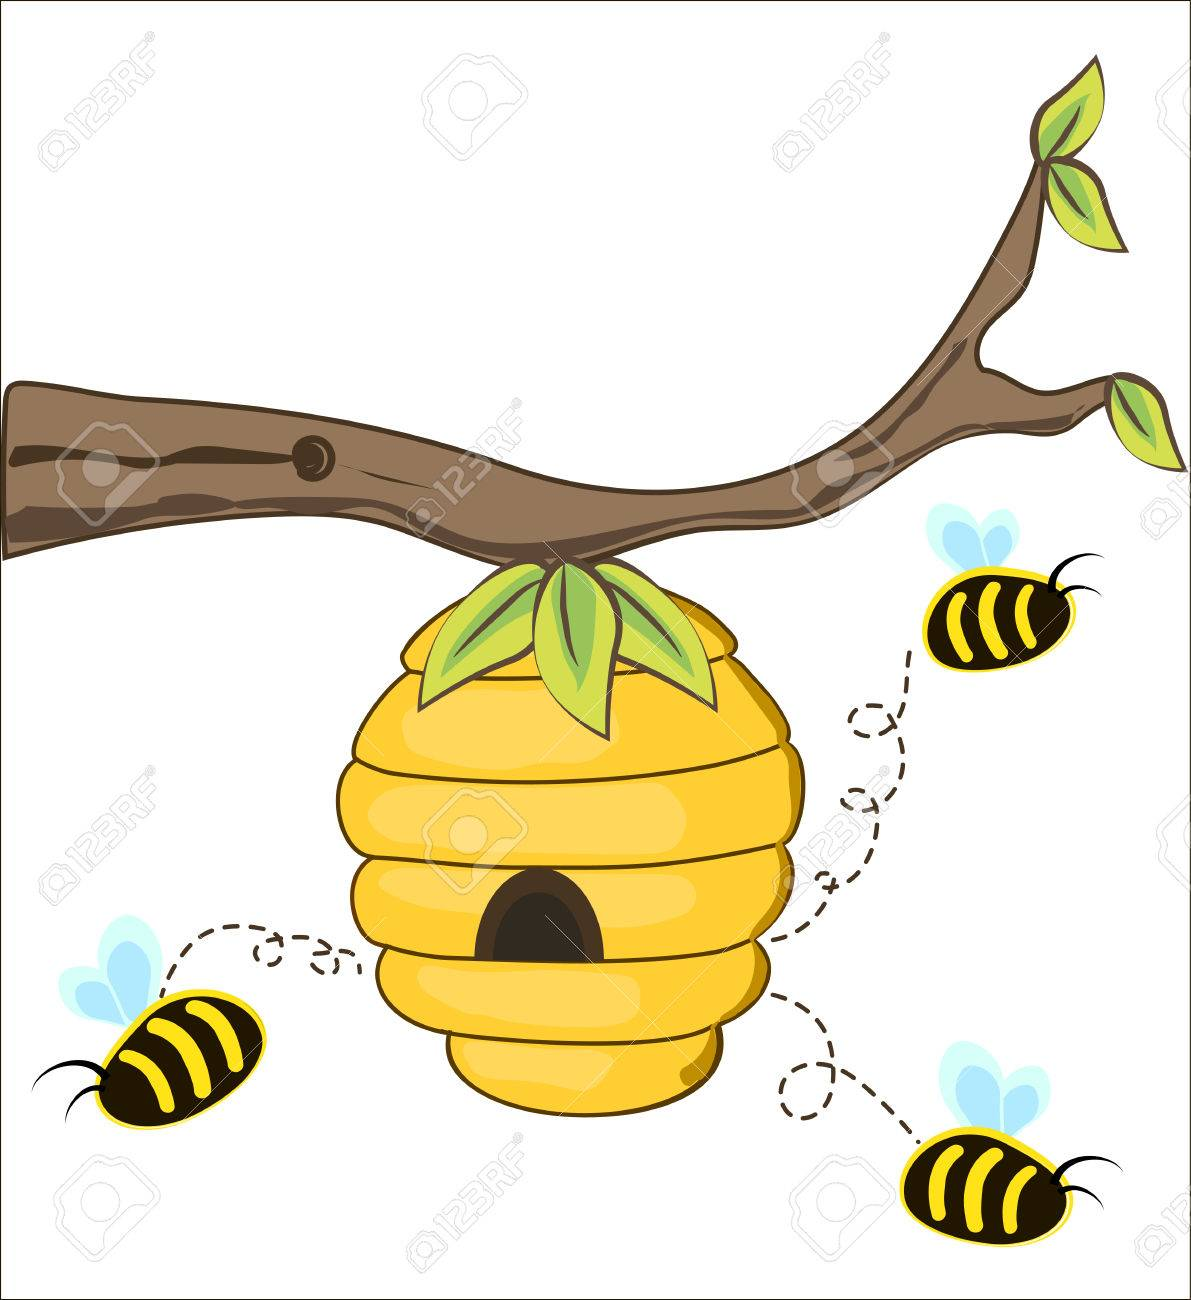 835 Beehive free clipart.